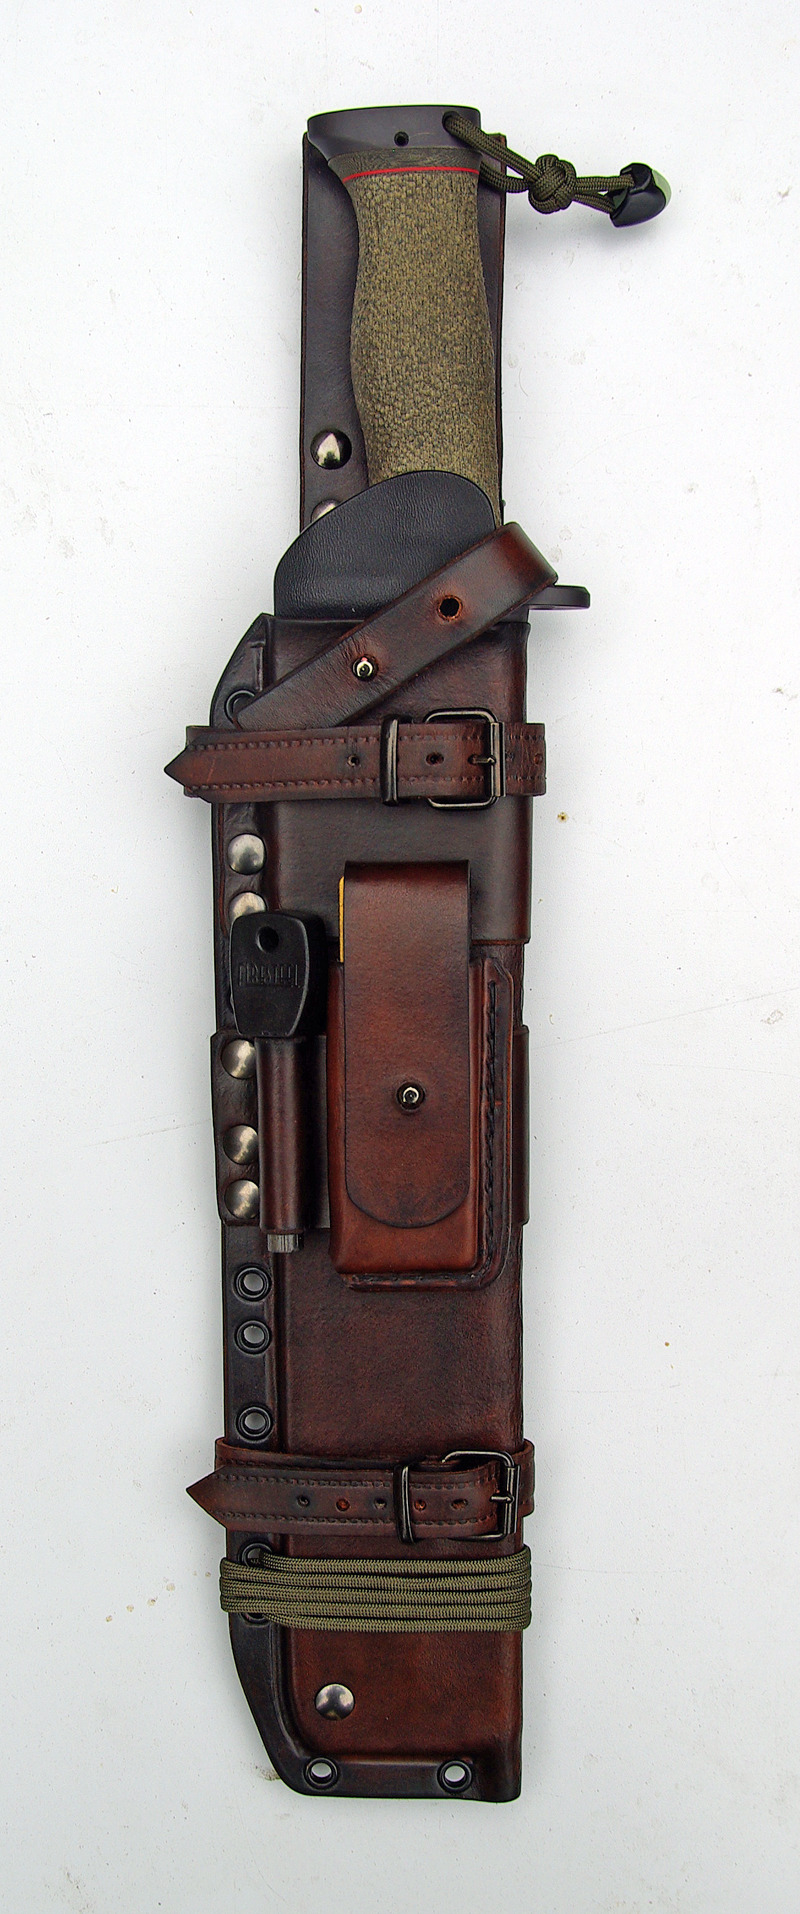 iamoceanic:  a-nice-change:  deusexarma:  Martin Sheaths hand-made, half-tanned leather and/or kydex sheaths. Definitely getting one made for my next bike.  I'd love to buy my hubs this :)  This is beautiful